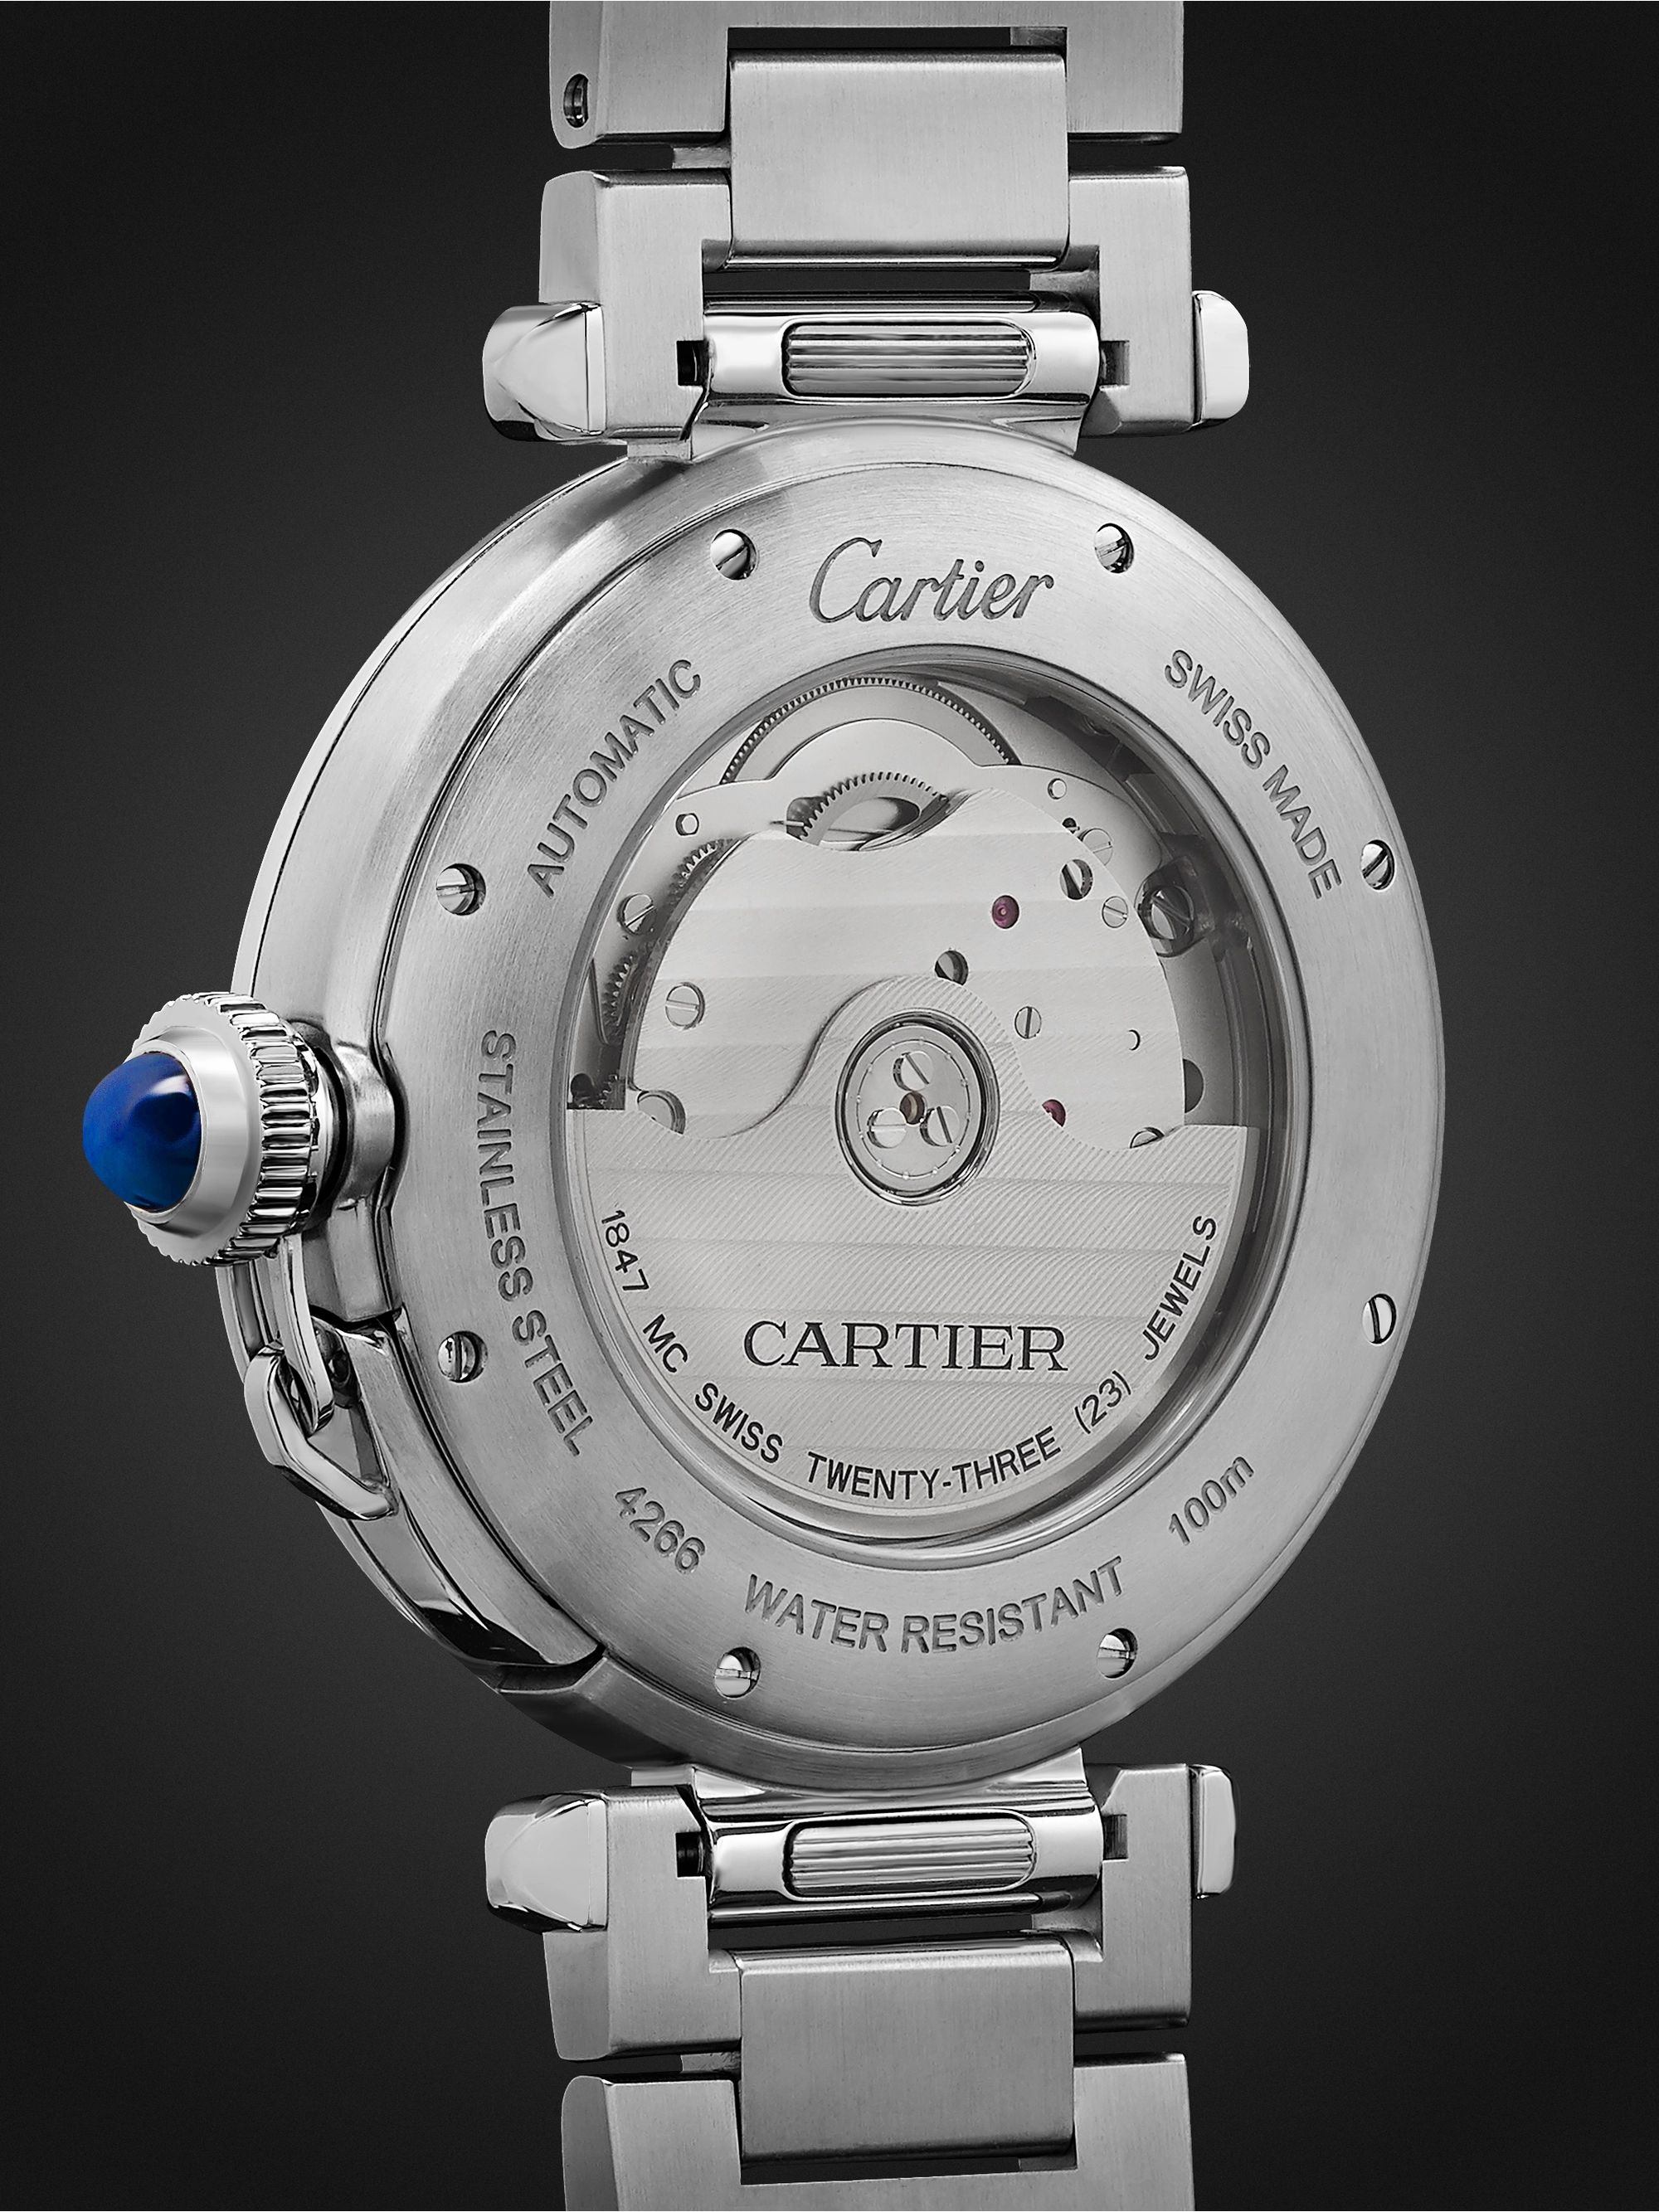 Cartier Pasha de Cartier Automatic 41mm Stainless Steel and Alligator Watch, Ref. No. WSPA009